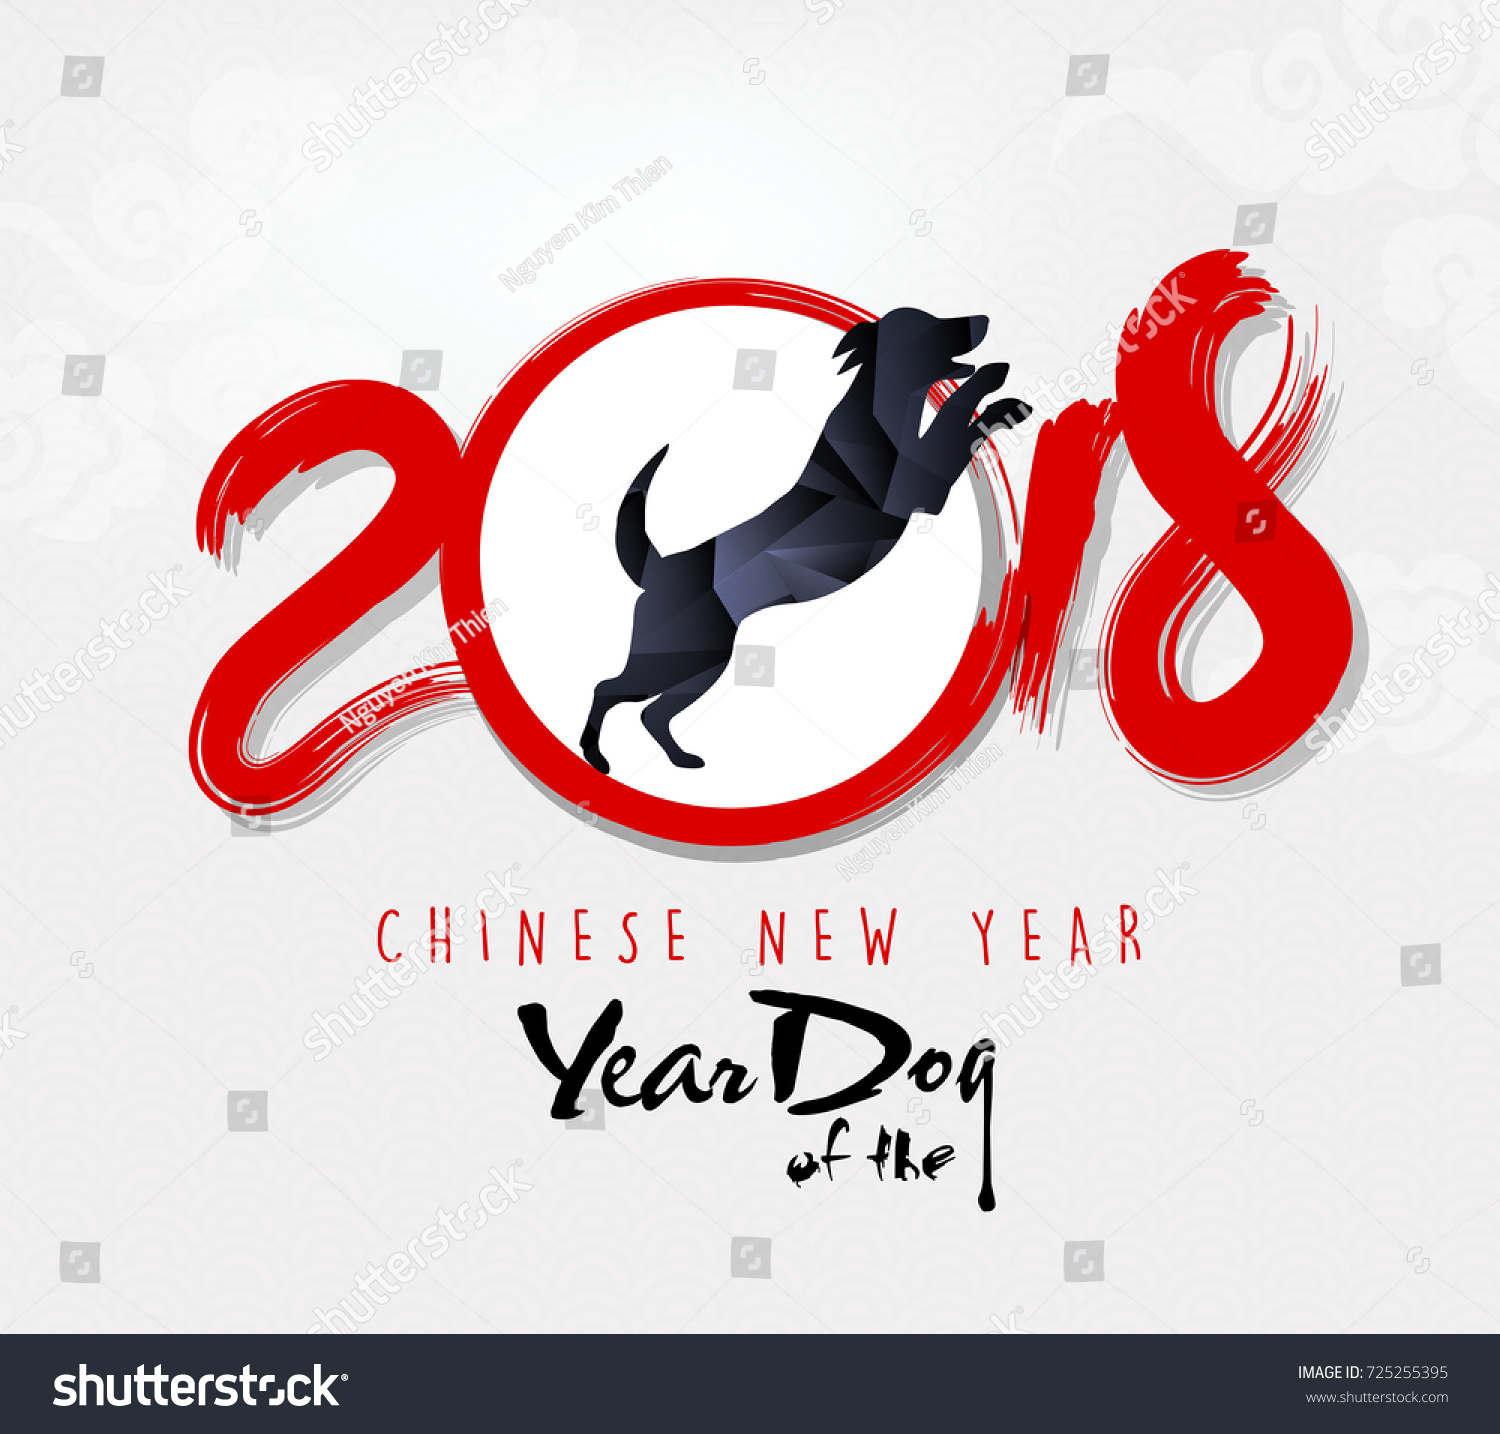 happy new year 2018 greeting card chinese new year of ther dog